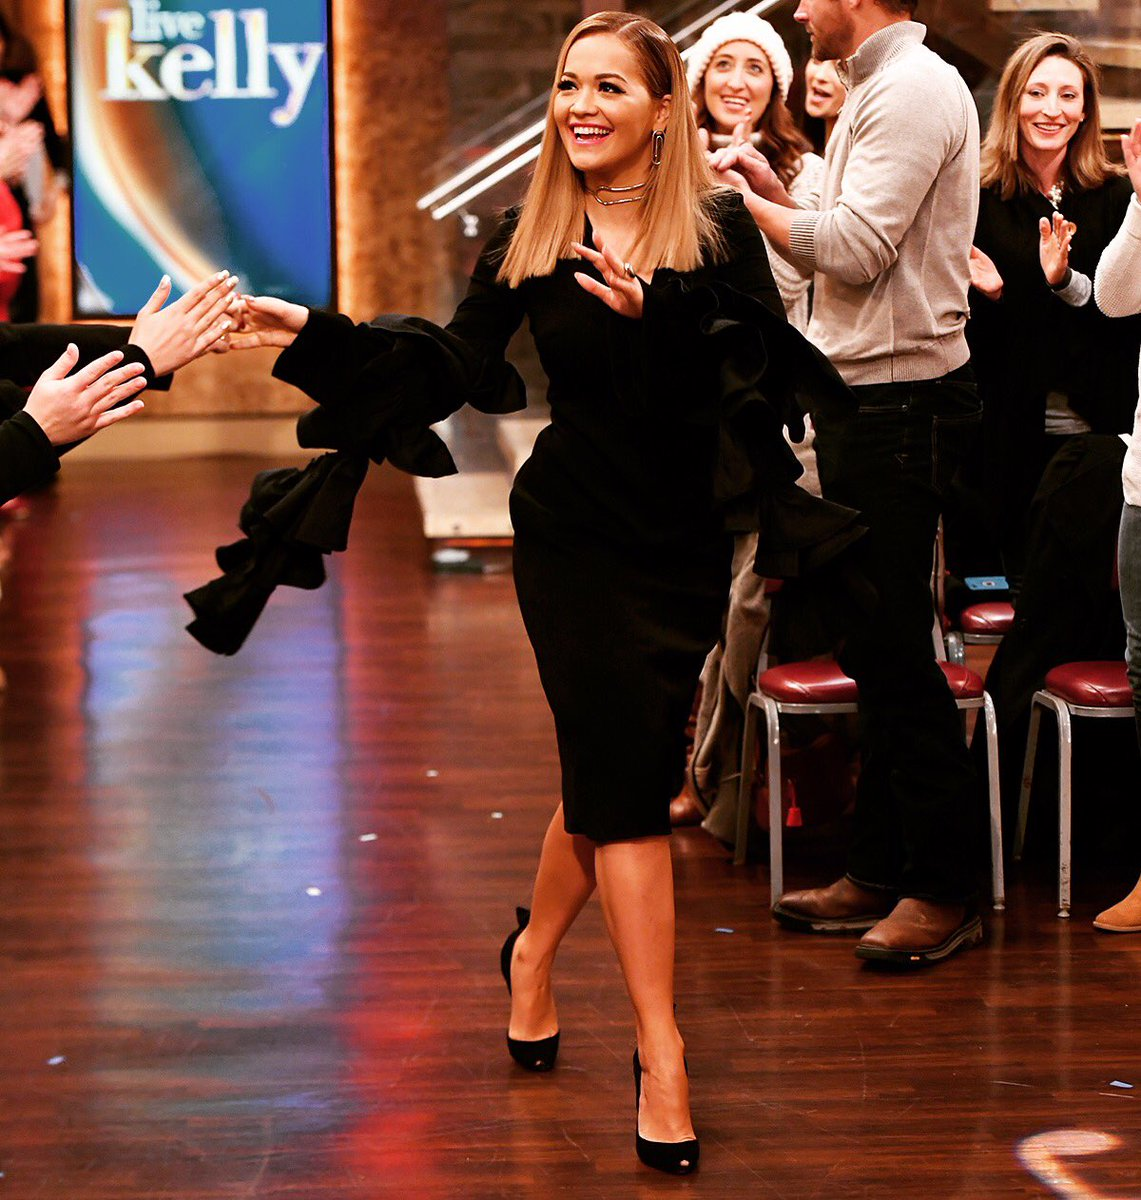 And I'm bacccck! ???????? tune in to see me co-host with @LiveKelly Monday Feb 6th!!! ???? https://t.co/F0AJA8LizX